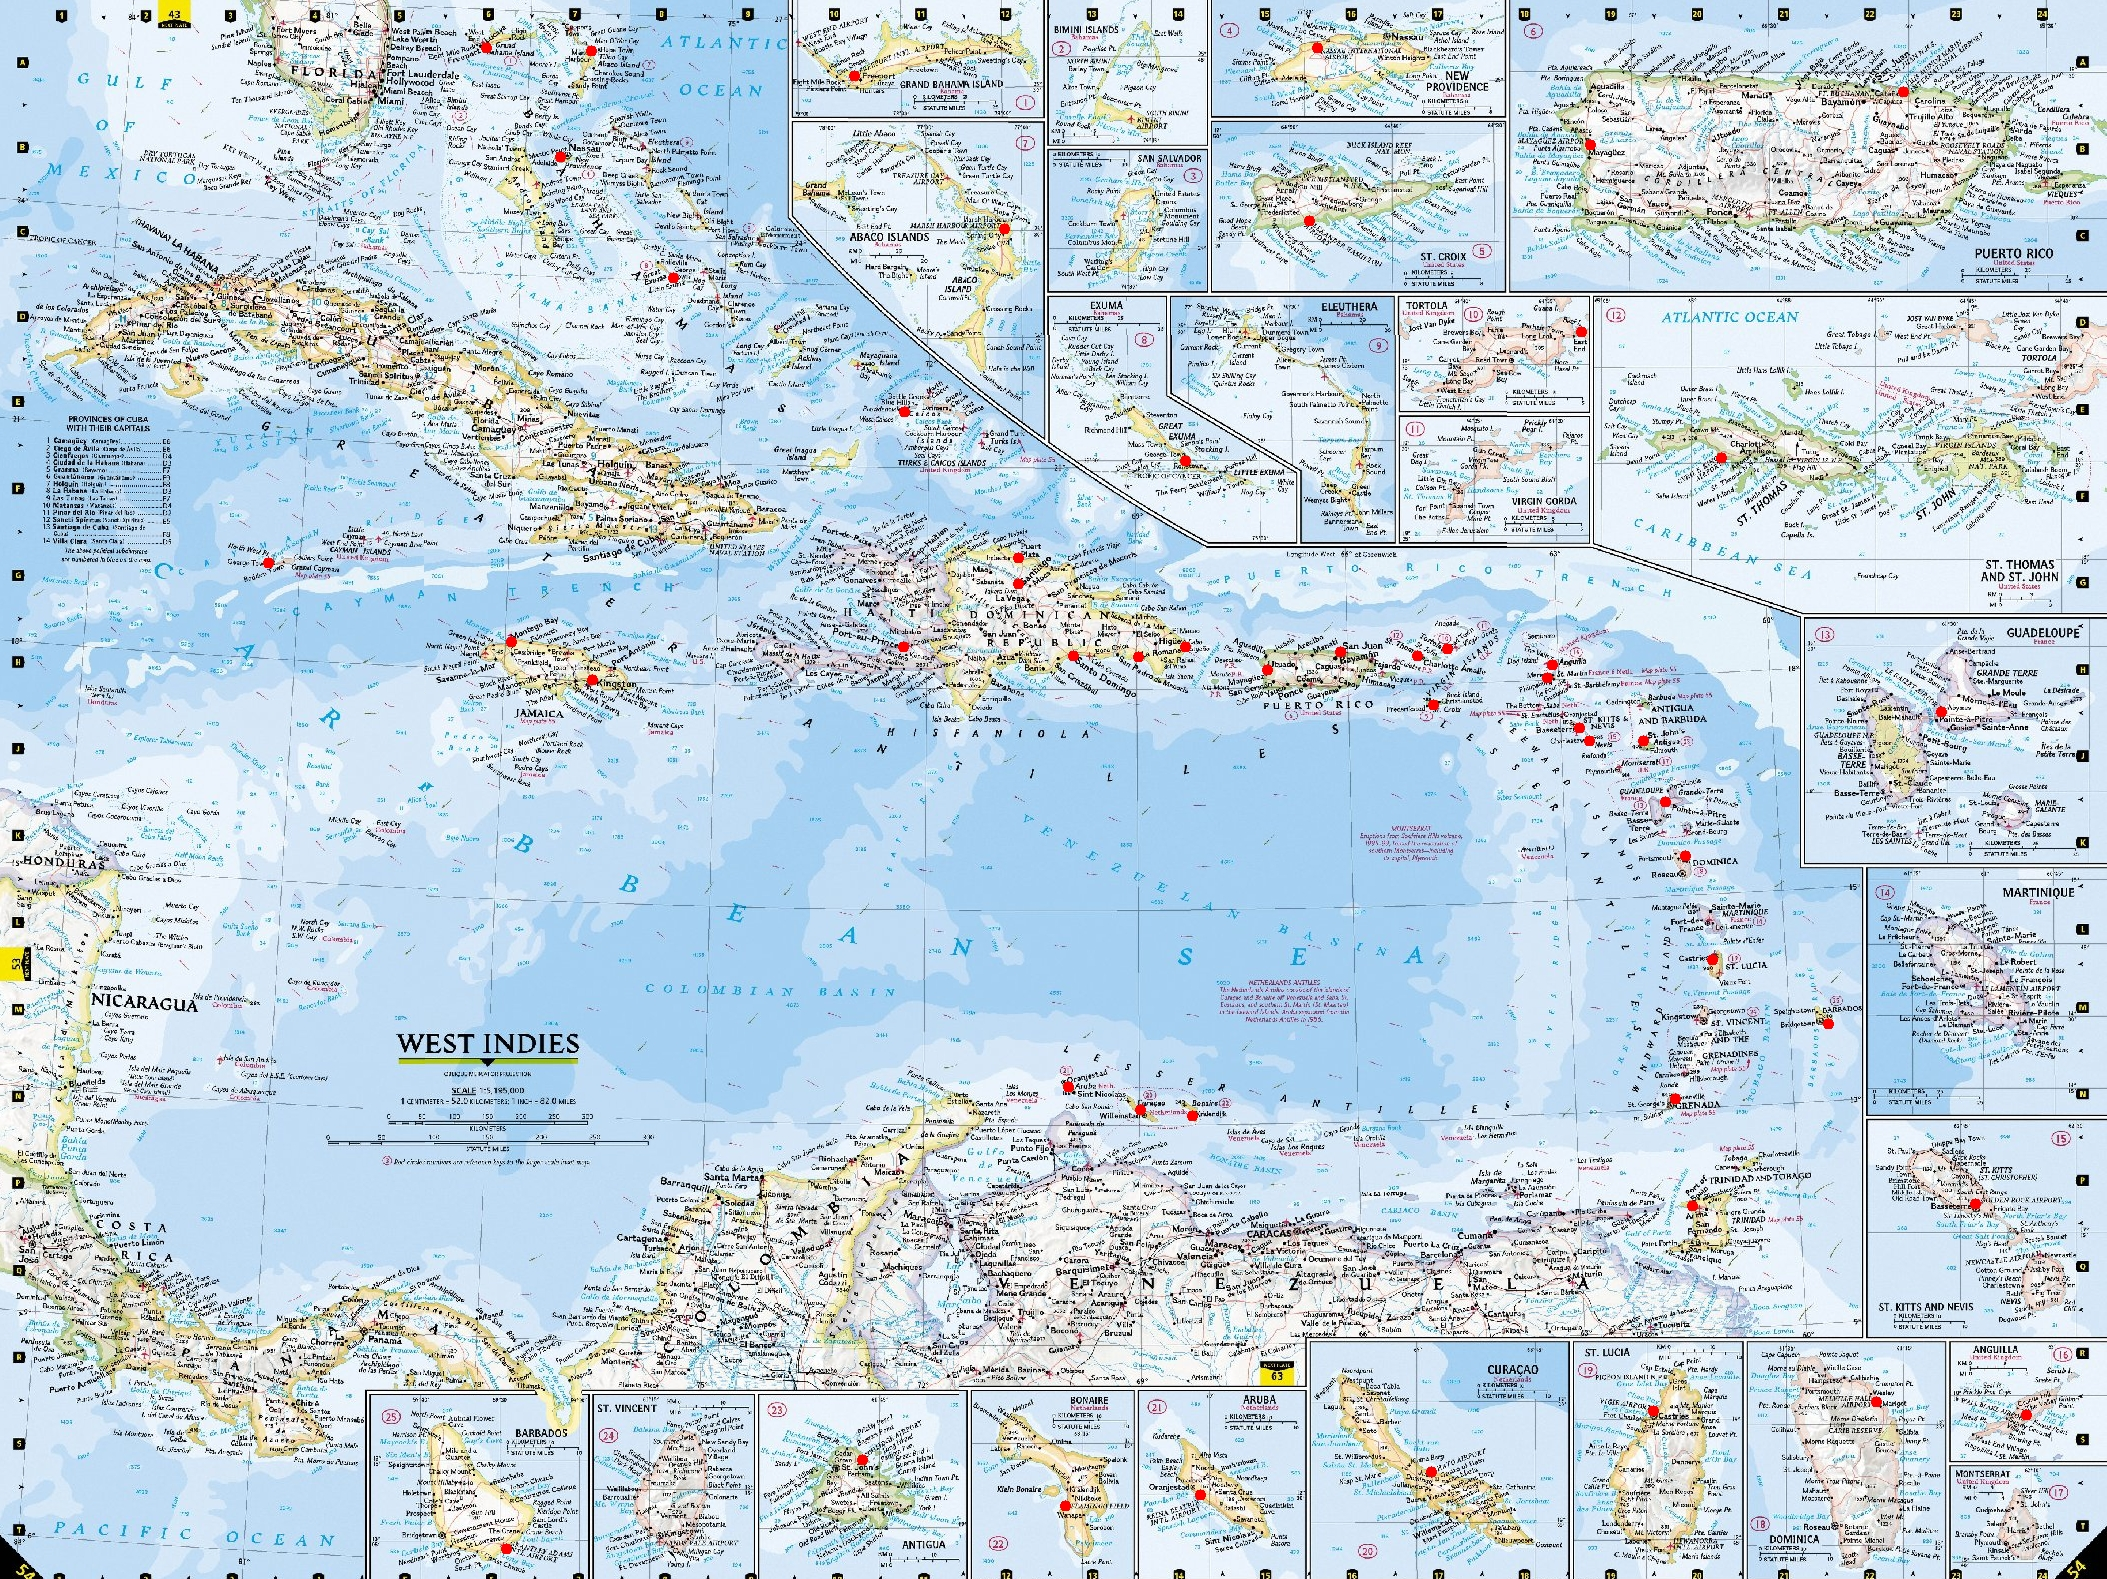 American Airlines Virtual  View Topic USA Flight Planing Map - A a large map of the usa